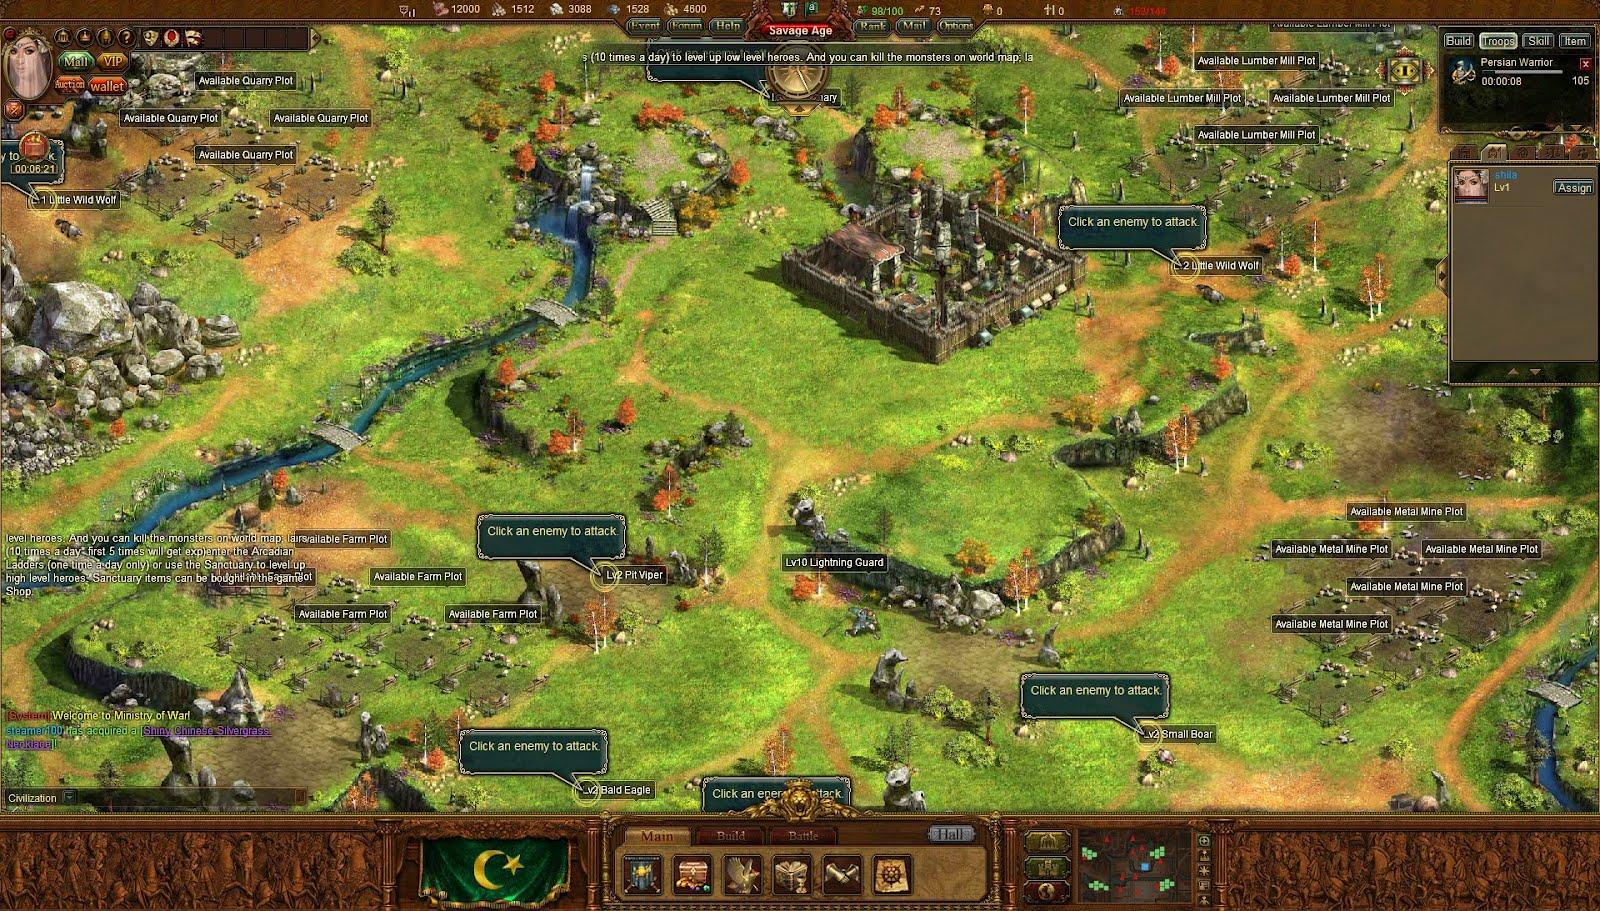 Free mmo rts on your browser the thinking blog knowledge grows free mmo rts on your browser the thinking blog knowledge grows when shared gumiabroncs Gallery